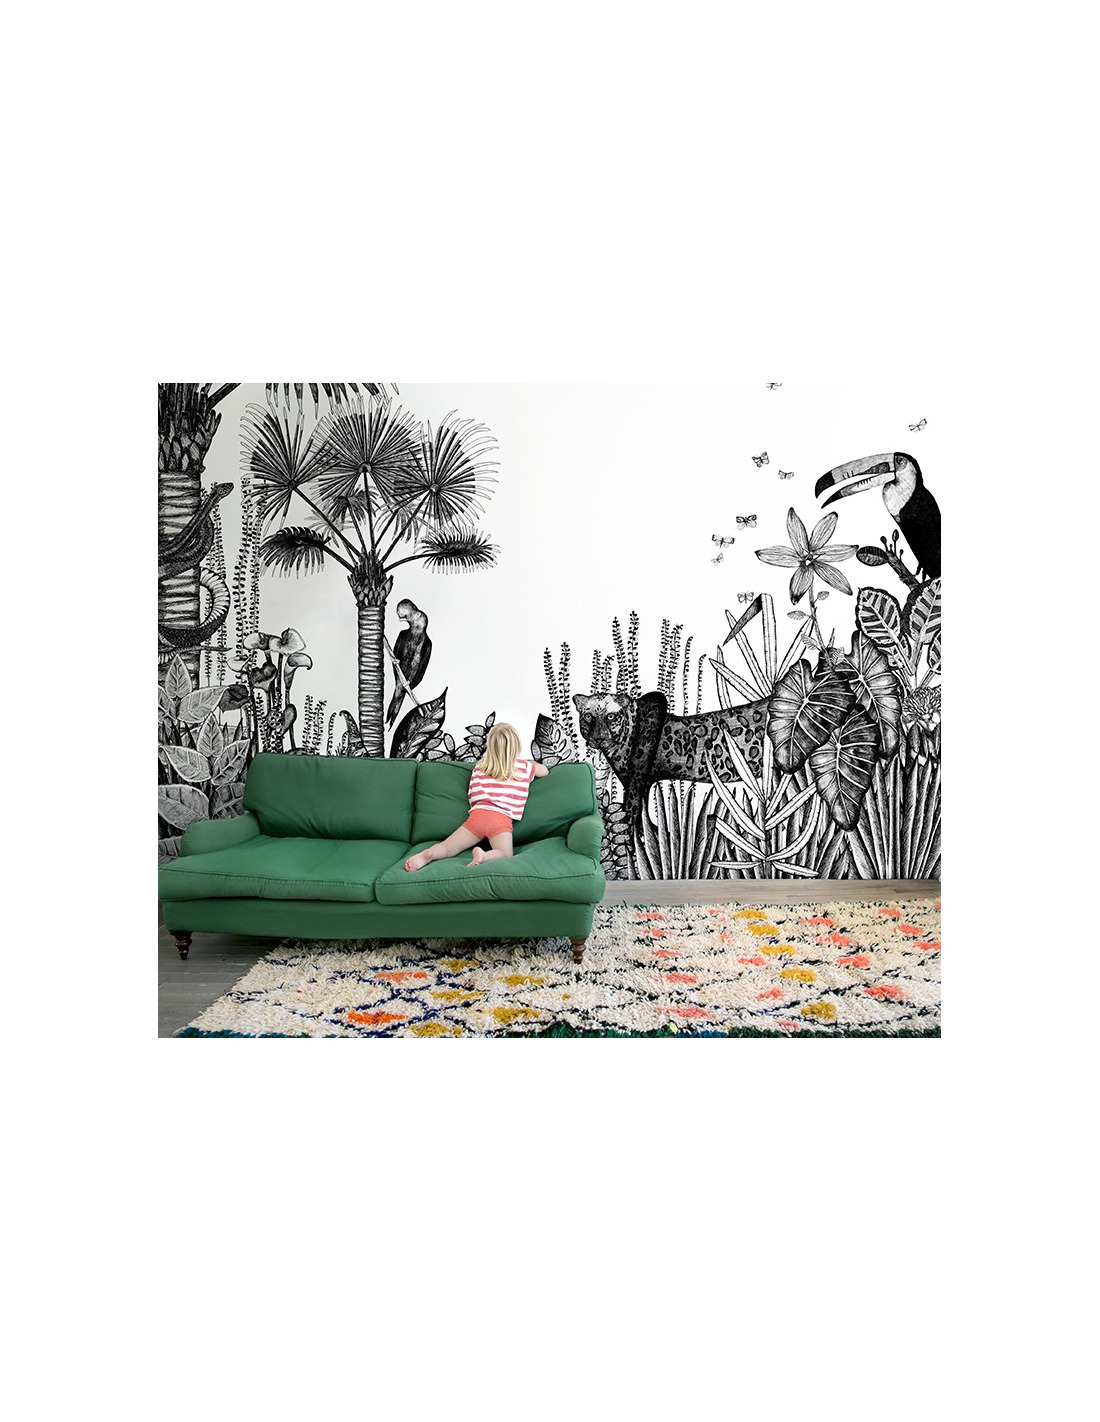 Papier peint design intiss the wild large d co jungle - Papier peint bien fait ...